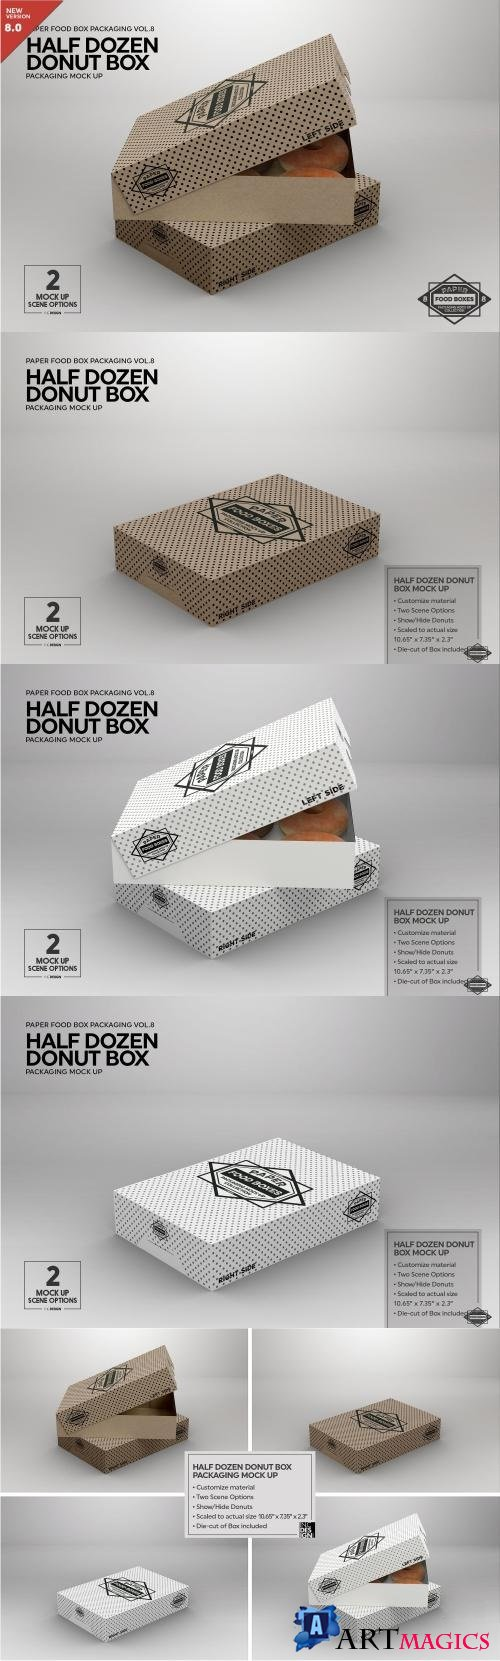 Half Dozen Donut Box Mock Up - 2181807